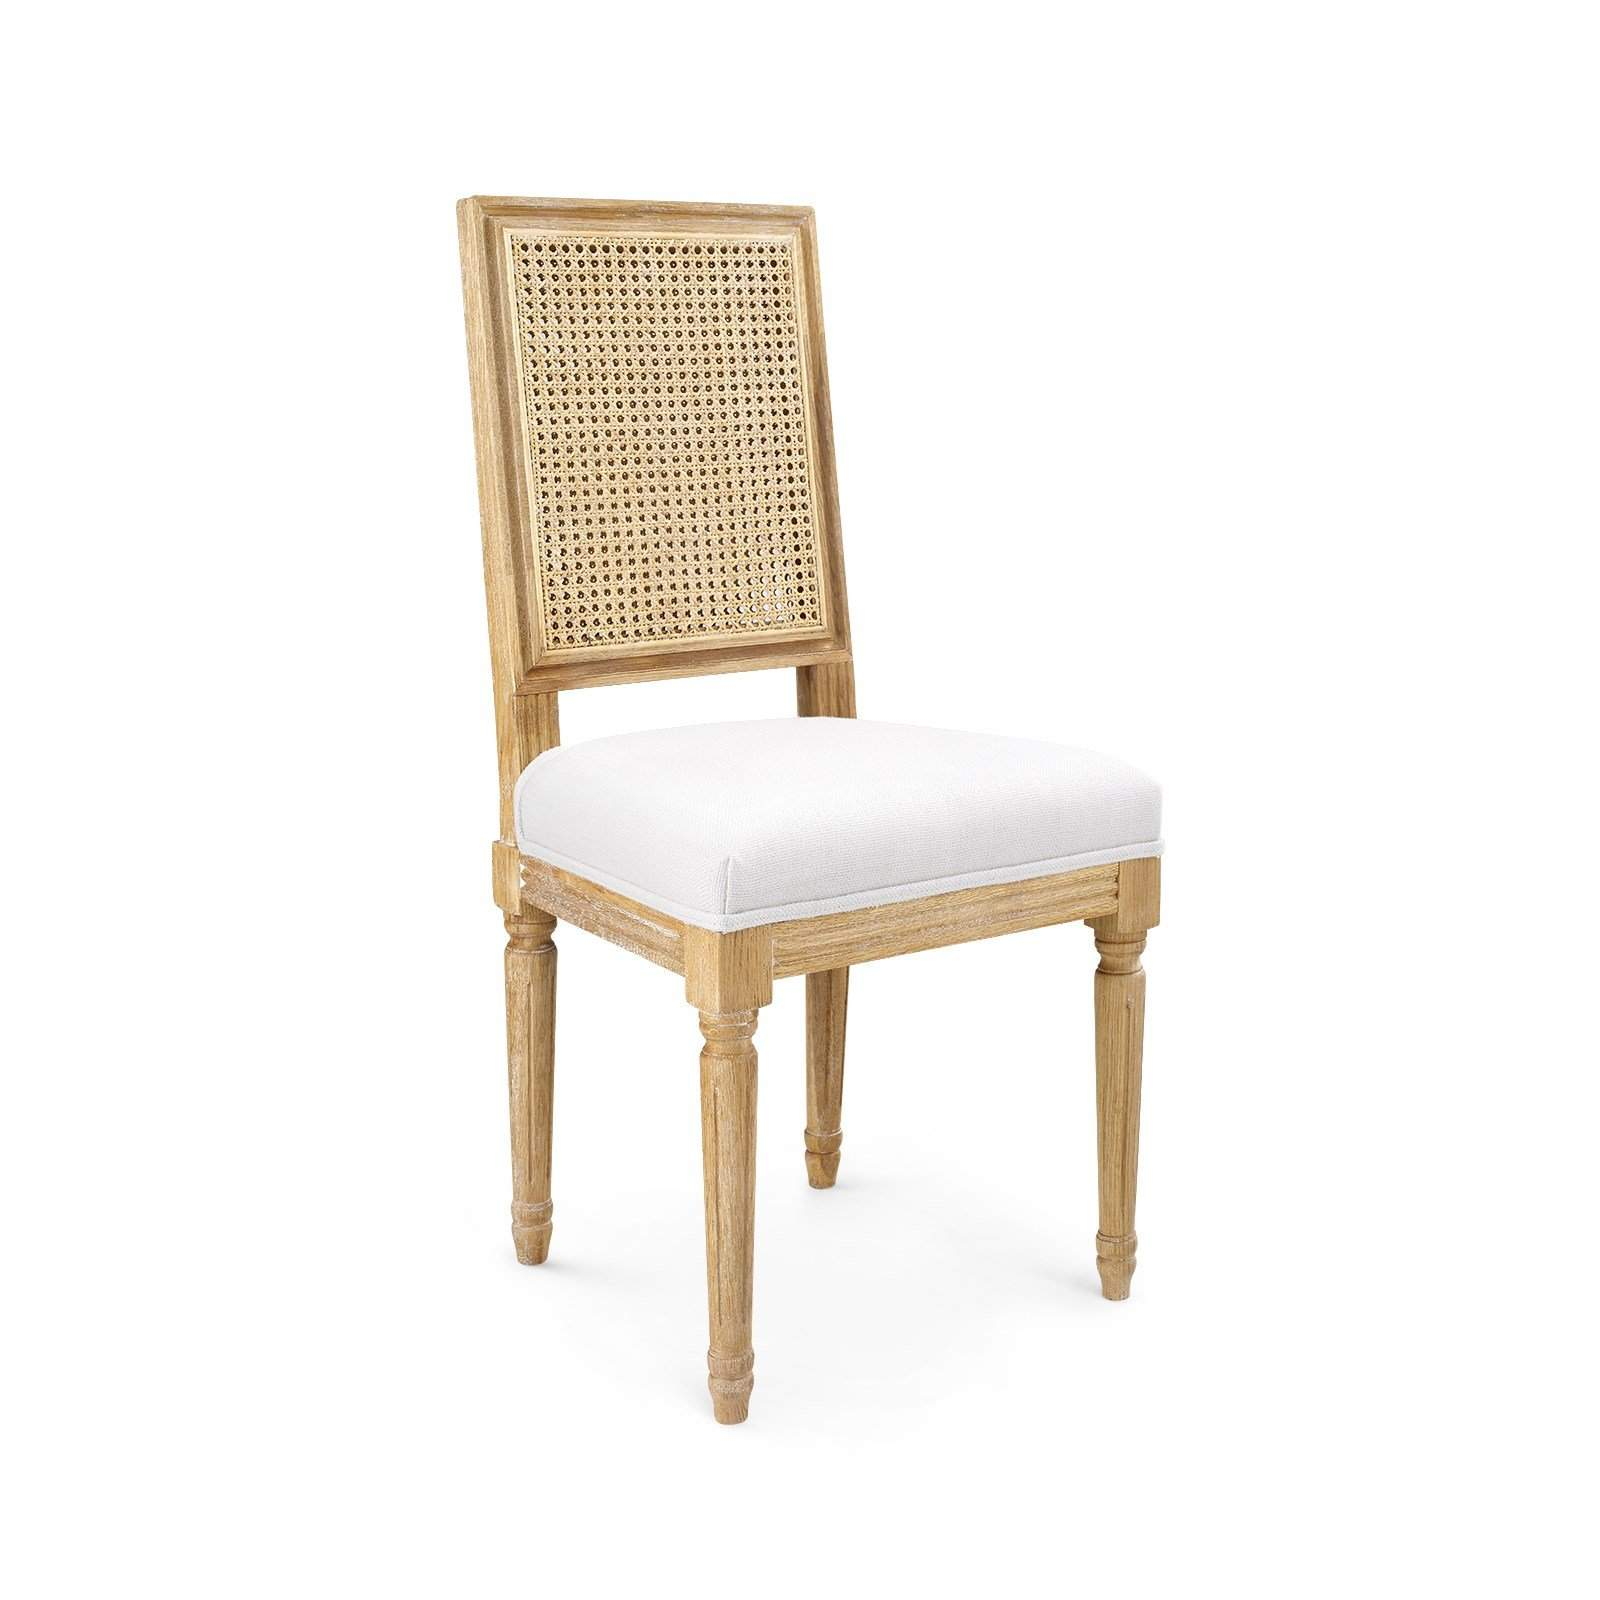 Bungalow 5 - ANNETTE SIDE CHAIR in NATURAL